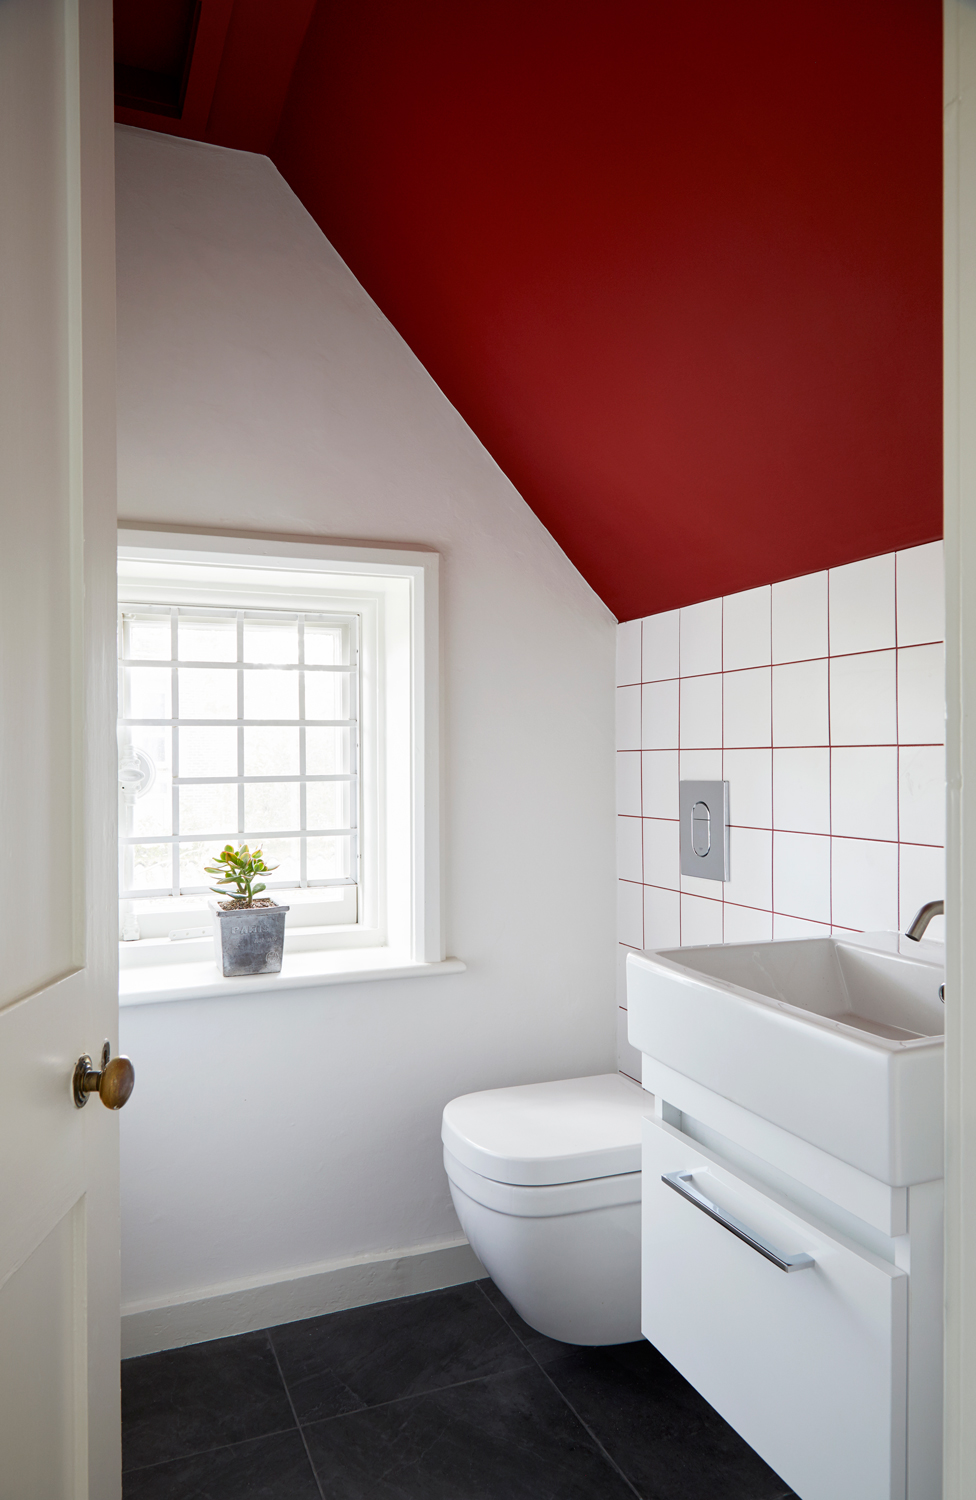 cloakroom with white tiles and red grout, red ceiling